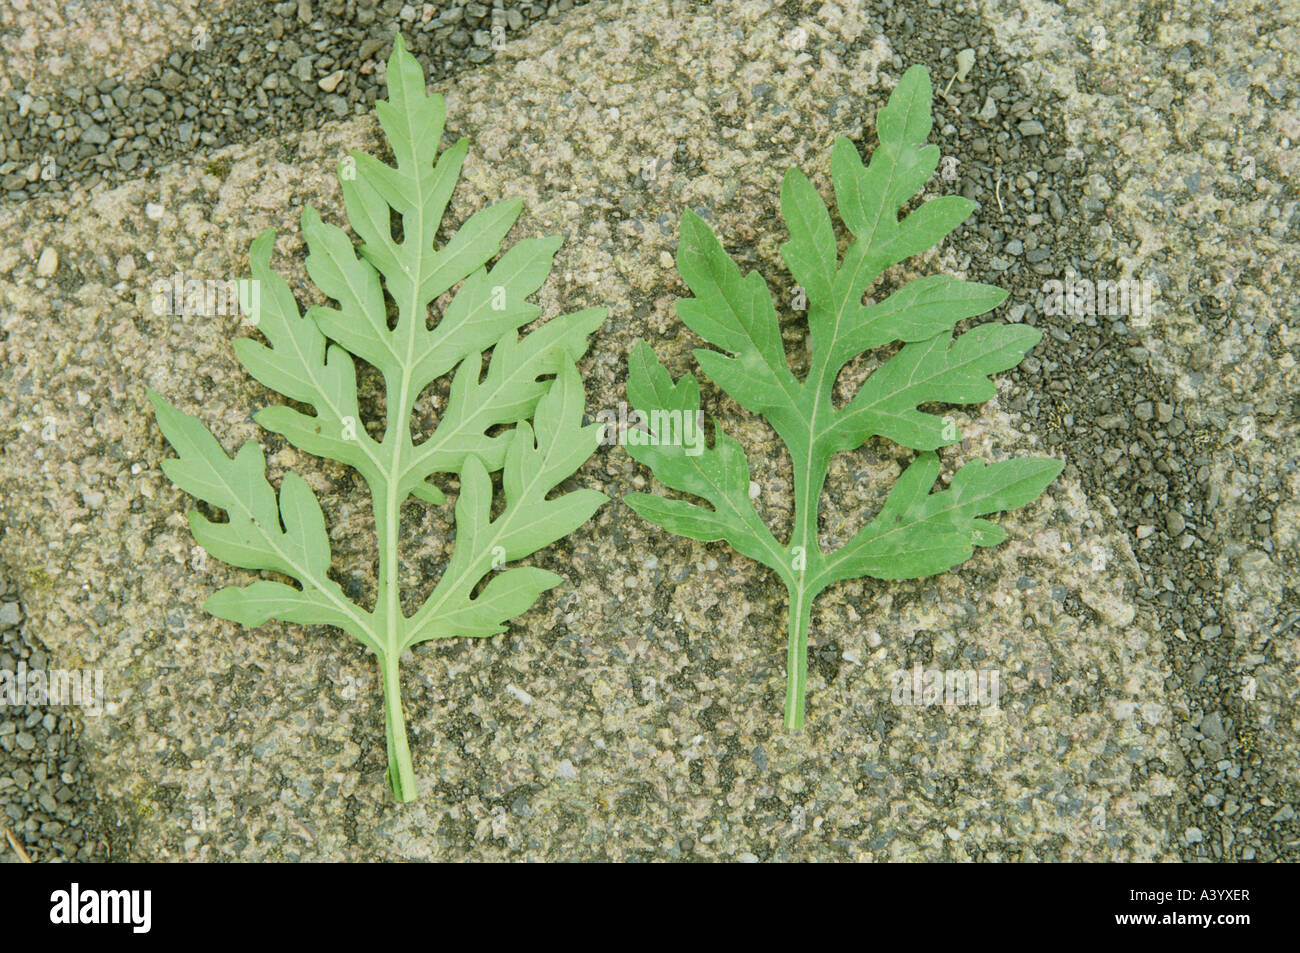 Weed roman wormwood stock photo royalty free image 10887694 alamy